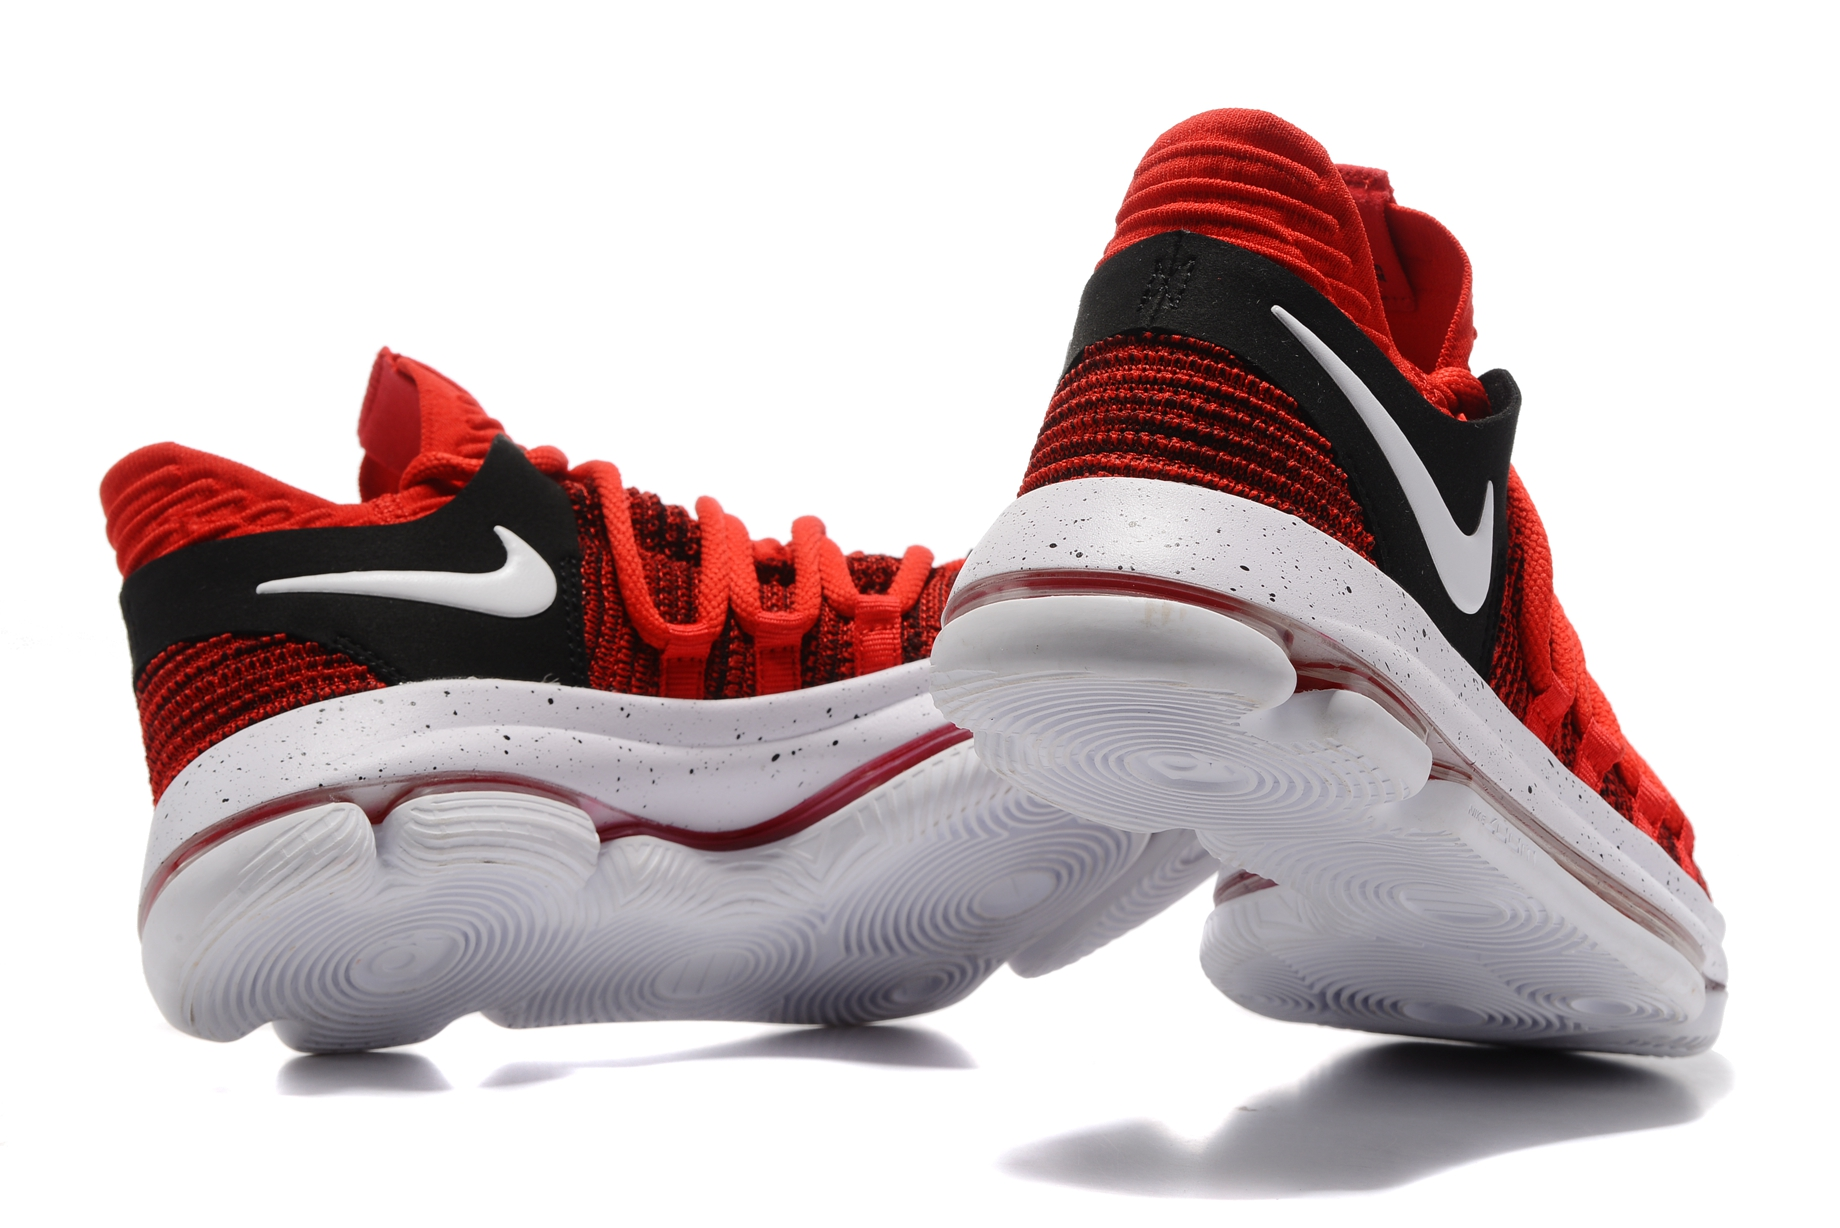 54e37574ce8ebd Nike Zoom KD X 10 Men Basketball Shoes Chinese Red White Black - Febbuy